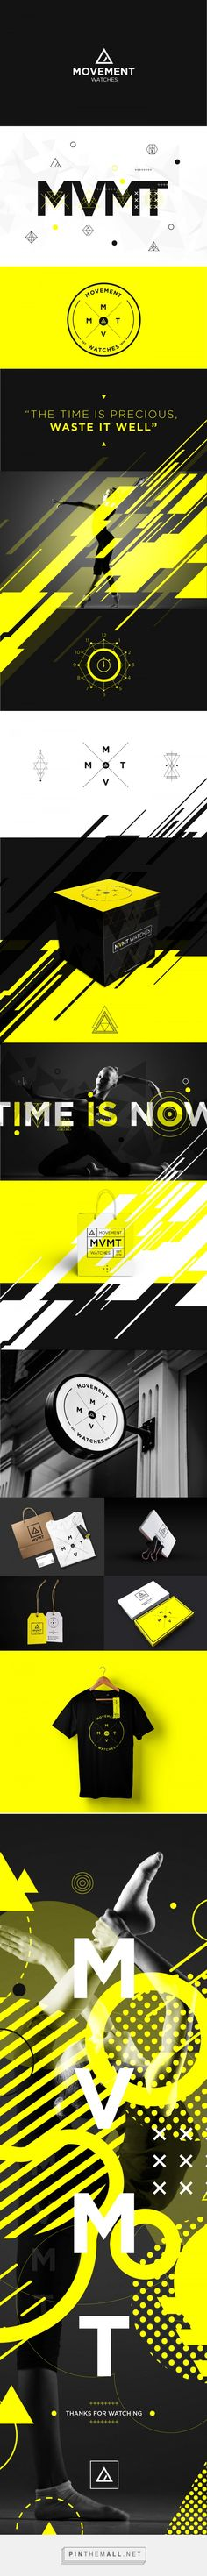 MVMT Watches / Brand - Applications + Visuals by Martín Liveratore - created via https://pinthemall.net